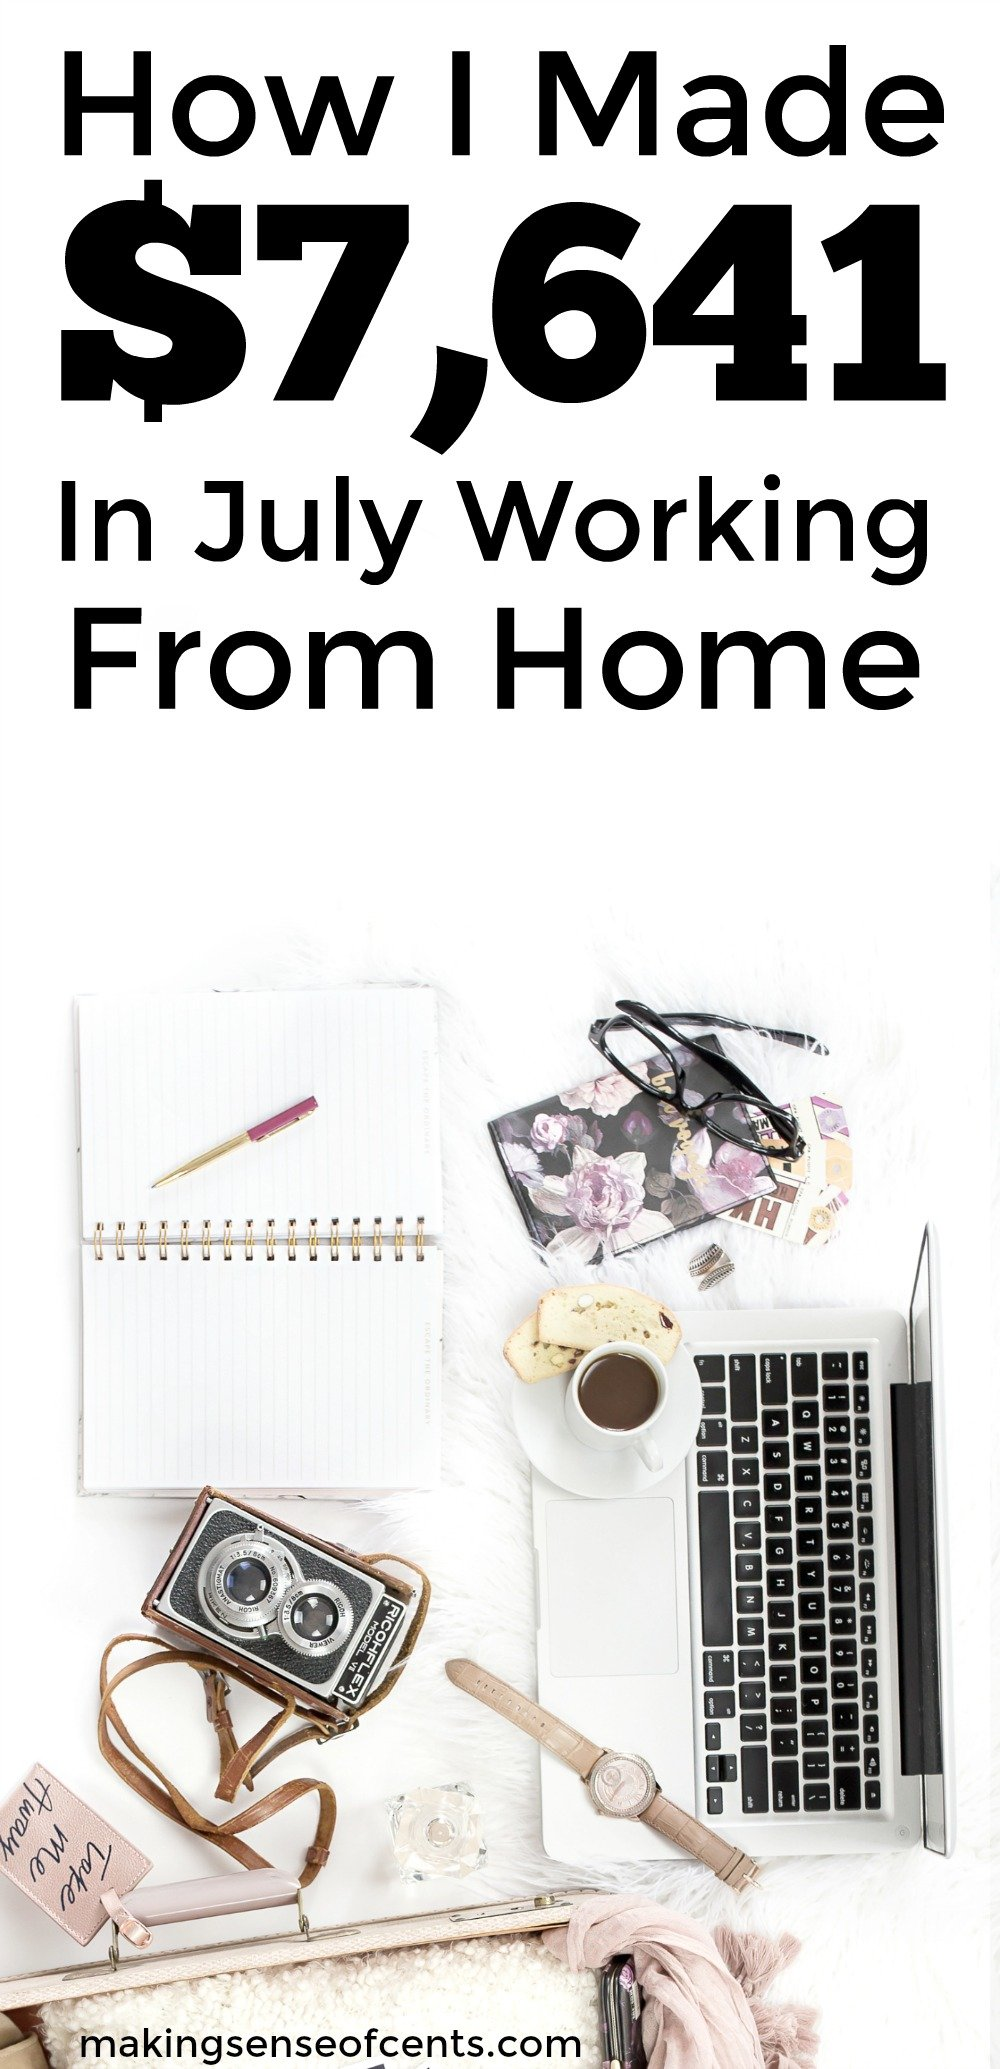 Find out how I made $7,641 in July from working at home.